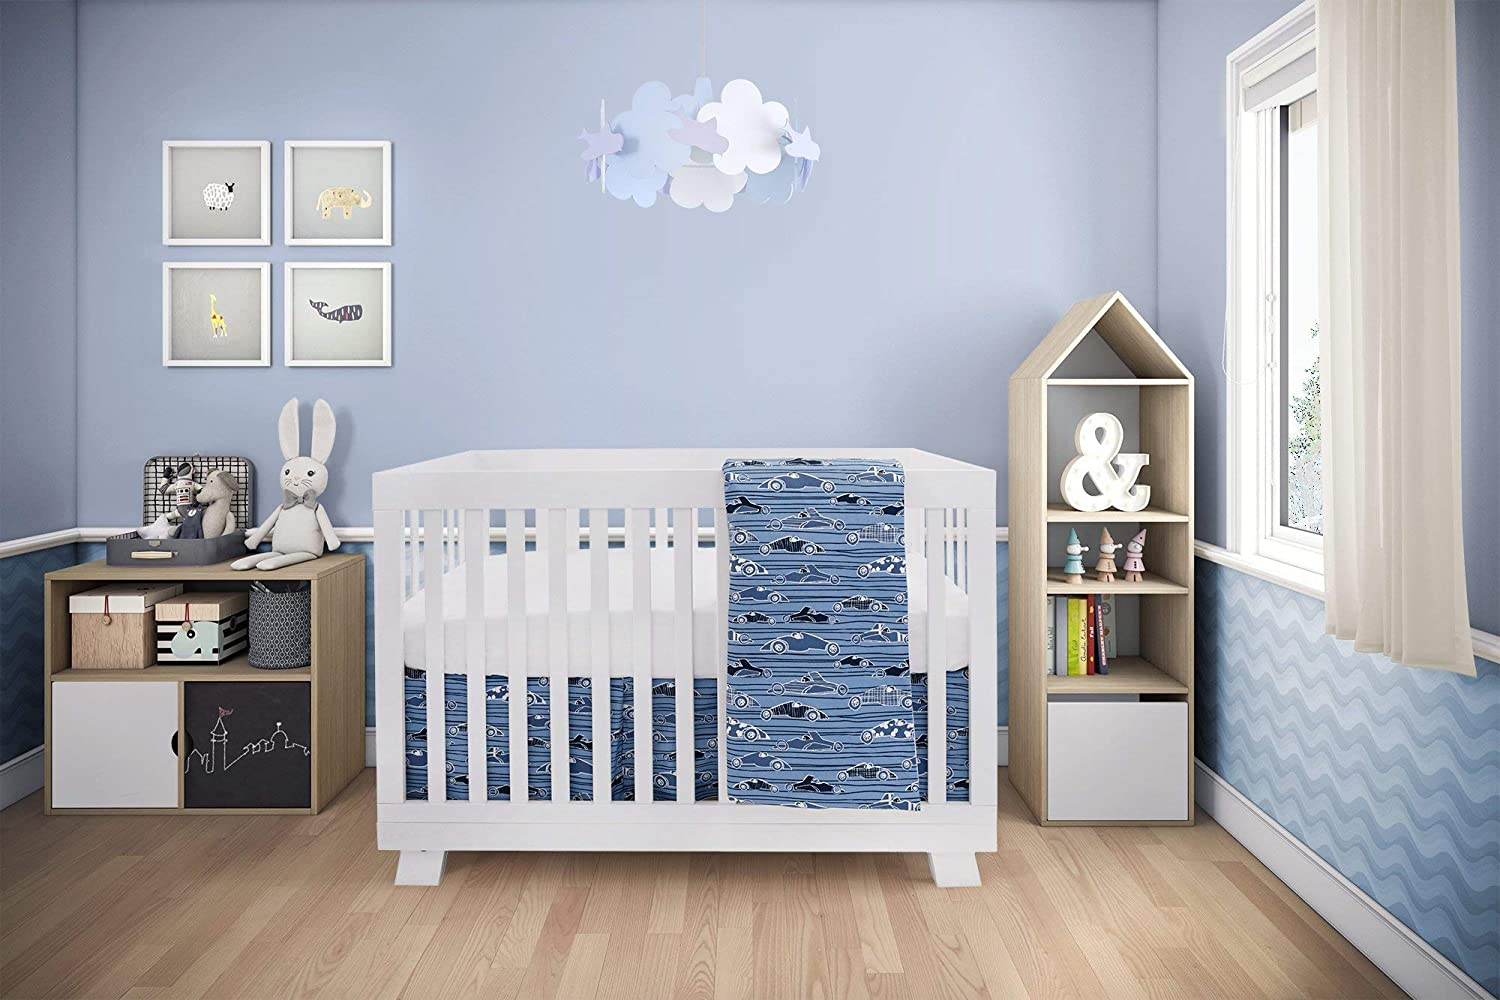 Boys and Girls Including: Fitted Sheet+ Crib Comforter+ Comforter Cover+ Skirt 4 Pieces Blue Racing Cars Design BEBELELO Baby Crib Bedding Set